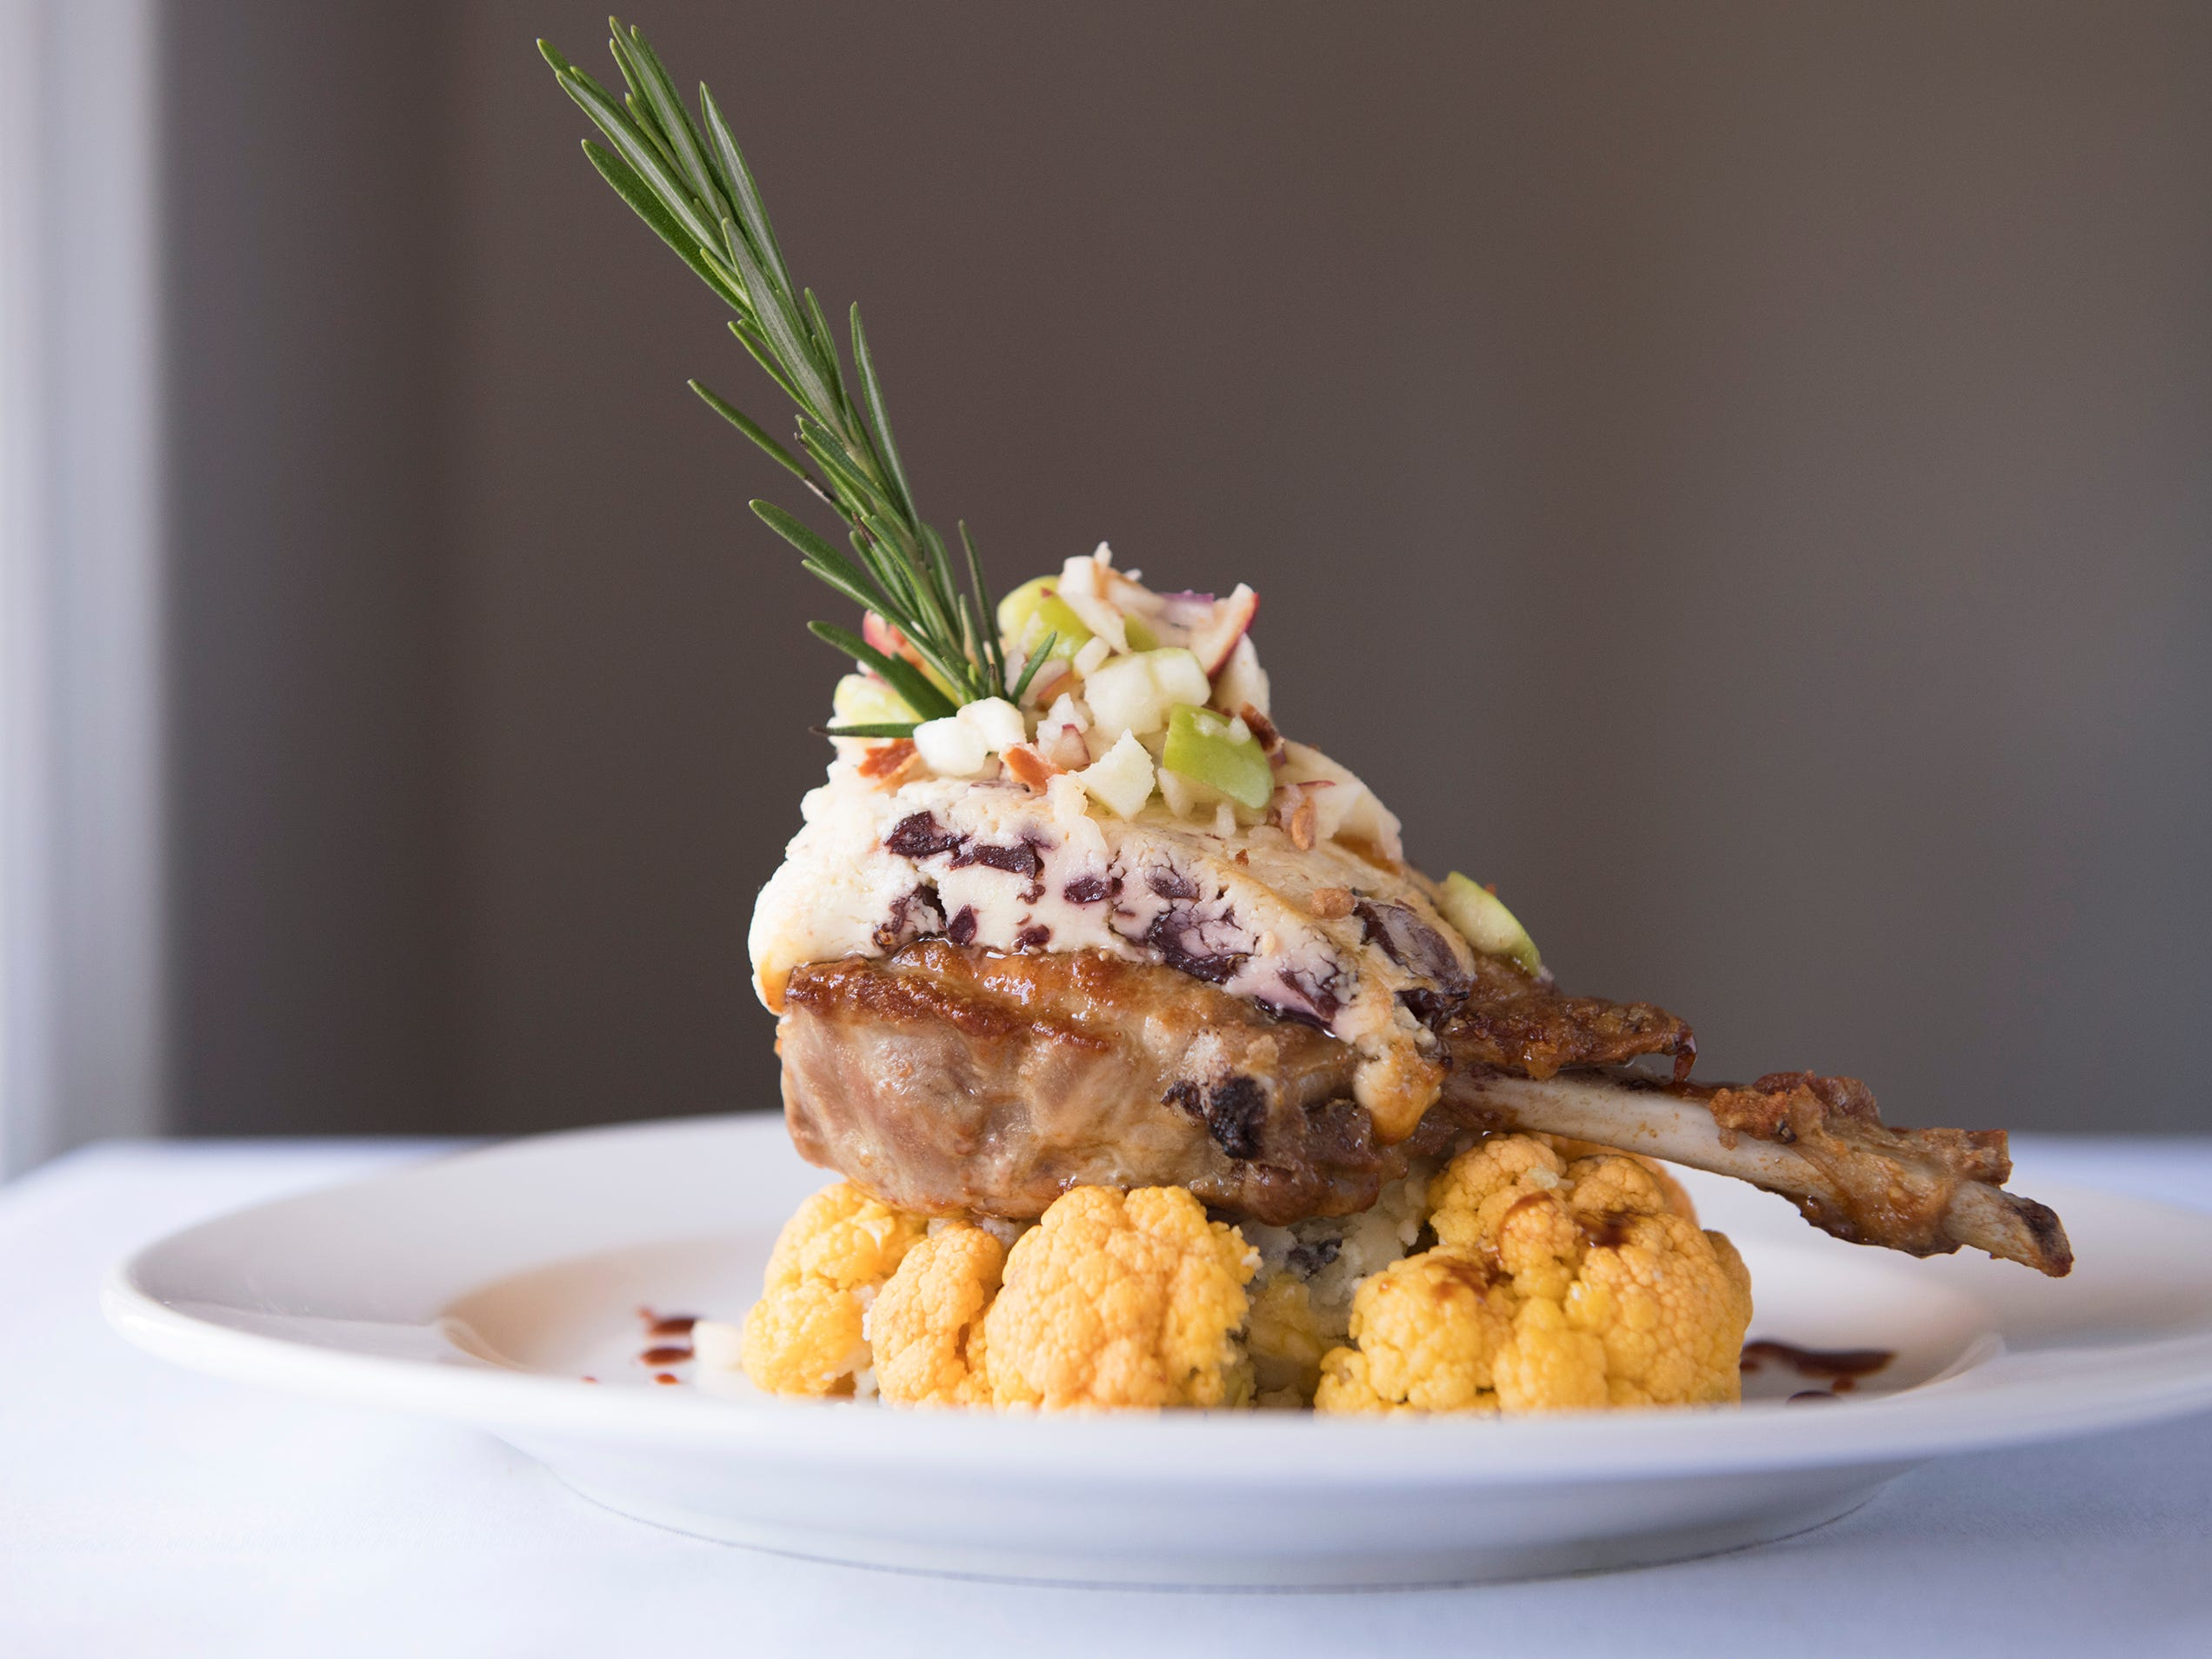 Berkshire pork chop with apple-bacon salsa and Quoxein Farms cranberry Stilton is an entree option on the SJ Hot Chefs' Spring Restaurant Week menu of Braddock's in Medford.